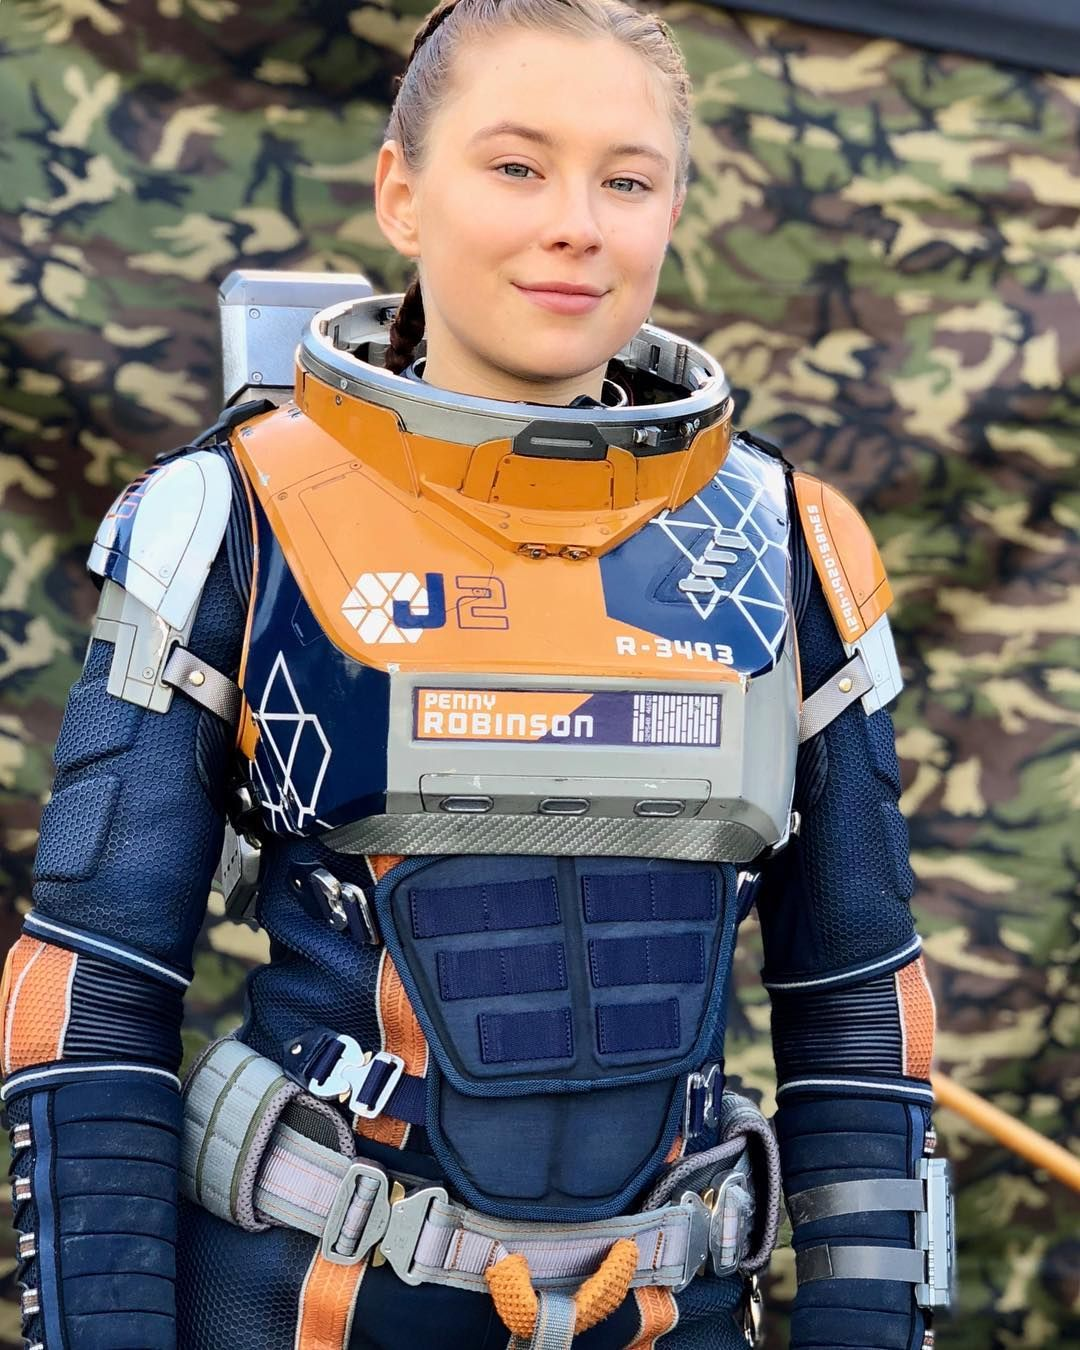 14 6k Likes 236 Comments Mina Sundwall Minasundwall On Instagram Today Is A Big Day We Ve Got The Whole She Space Suit Lost In Space Cyberpunk Girl